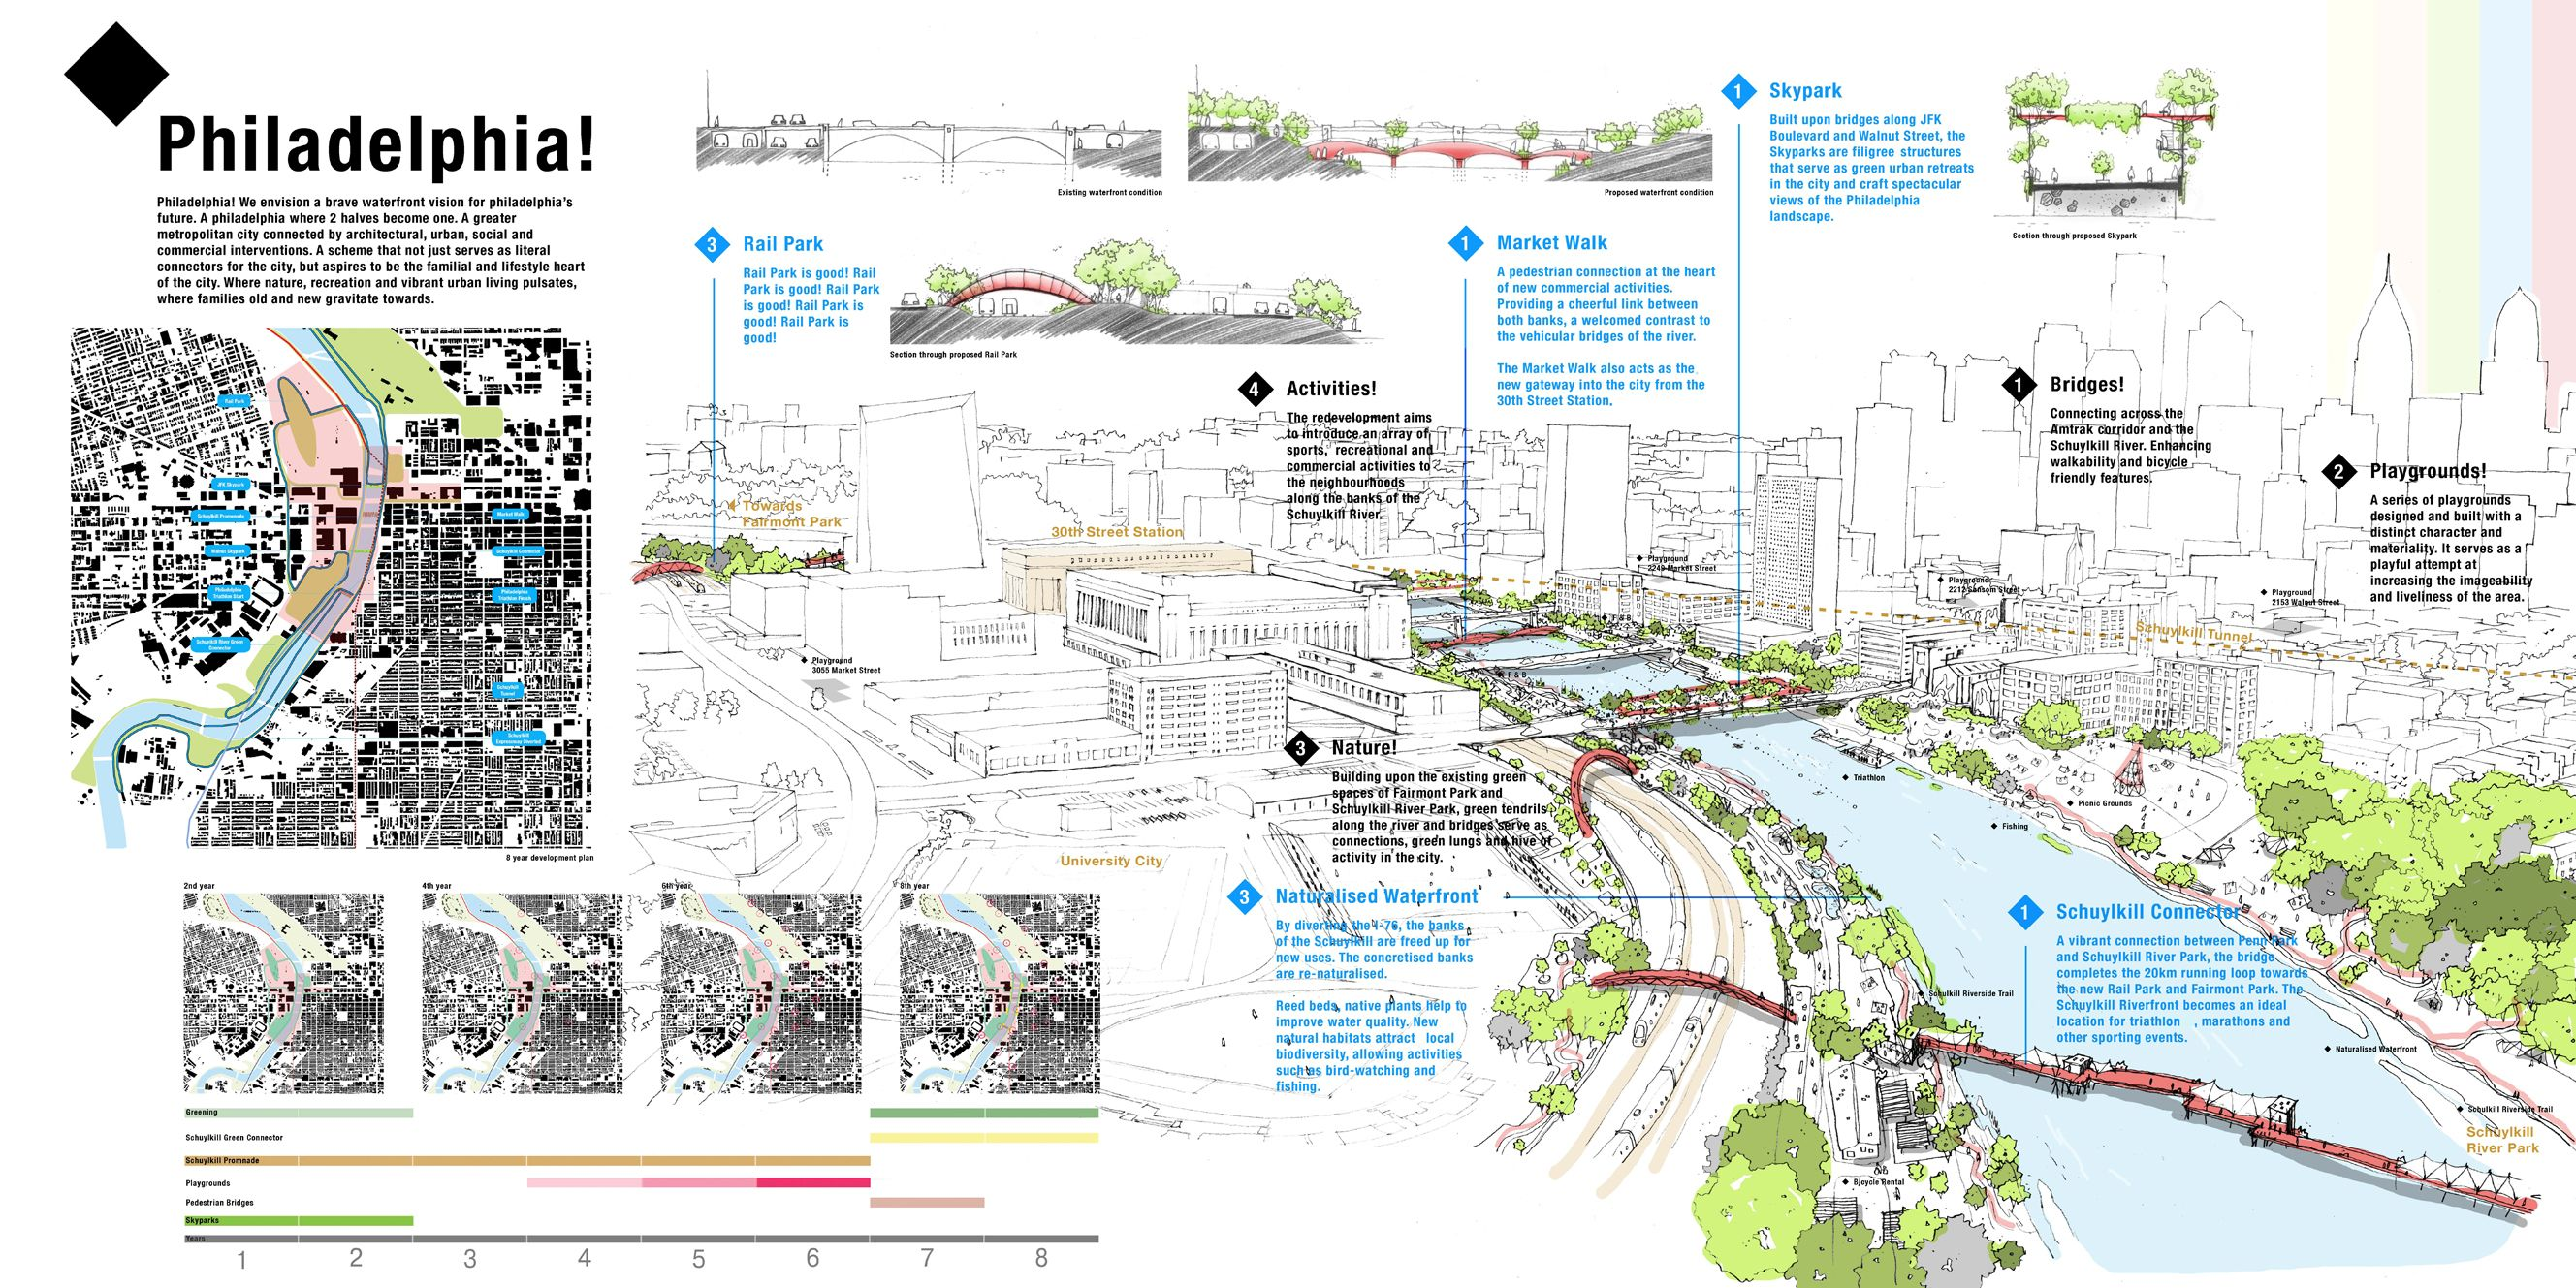 Pin By Mohan On Poster Urban Planning Pinterest Urban Design